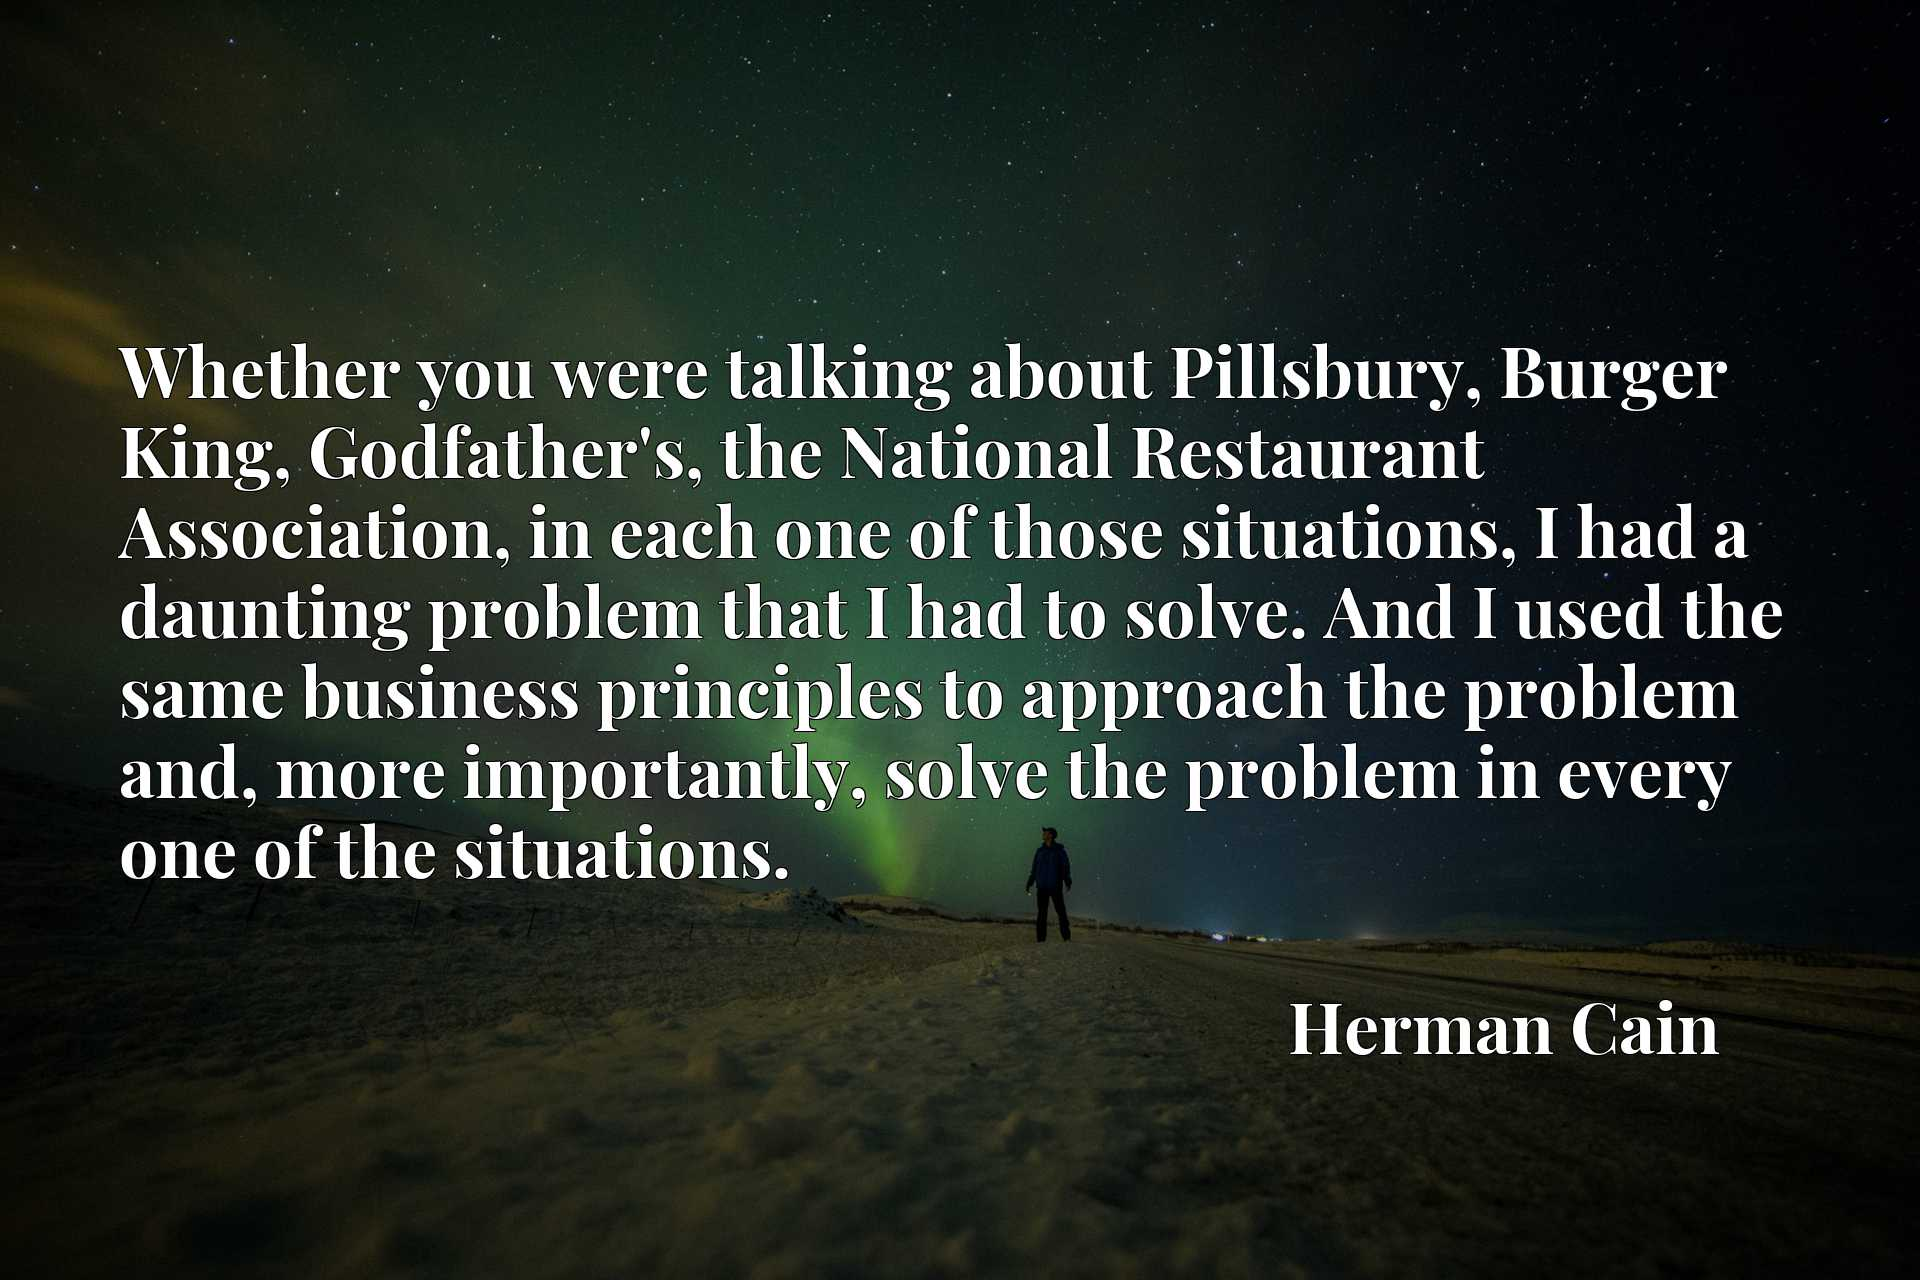 Whether you were talking about Pillsbury, Burger King, Godfather's, the National Restaurant Association, in each one of those situations, I had a daunting problem that I had to solve. And I used the same business principles to approach the problem and, more importantly, solve the problem in every one of the situations.